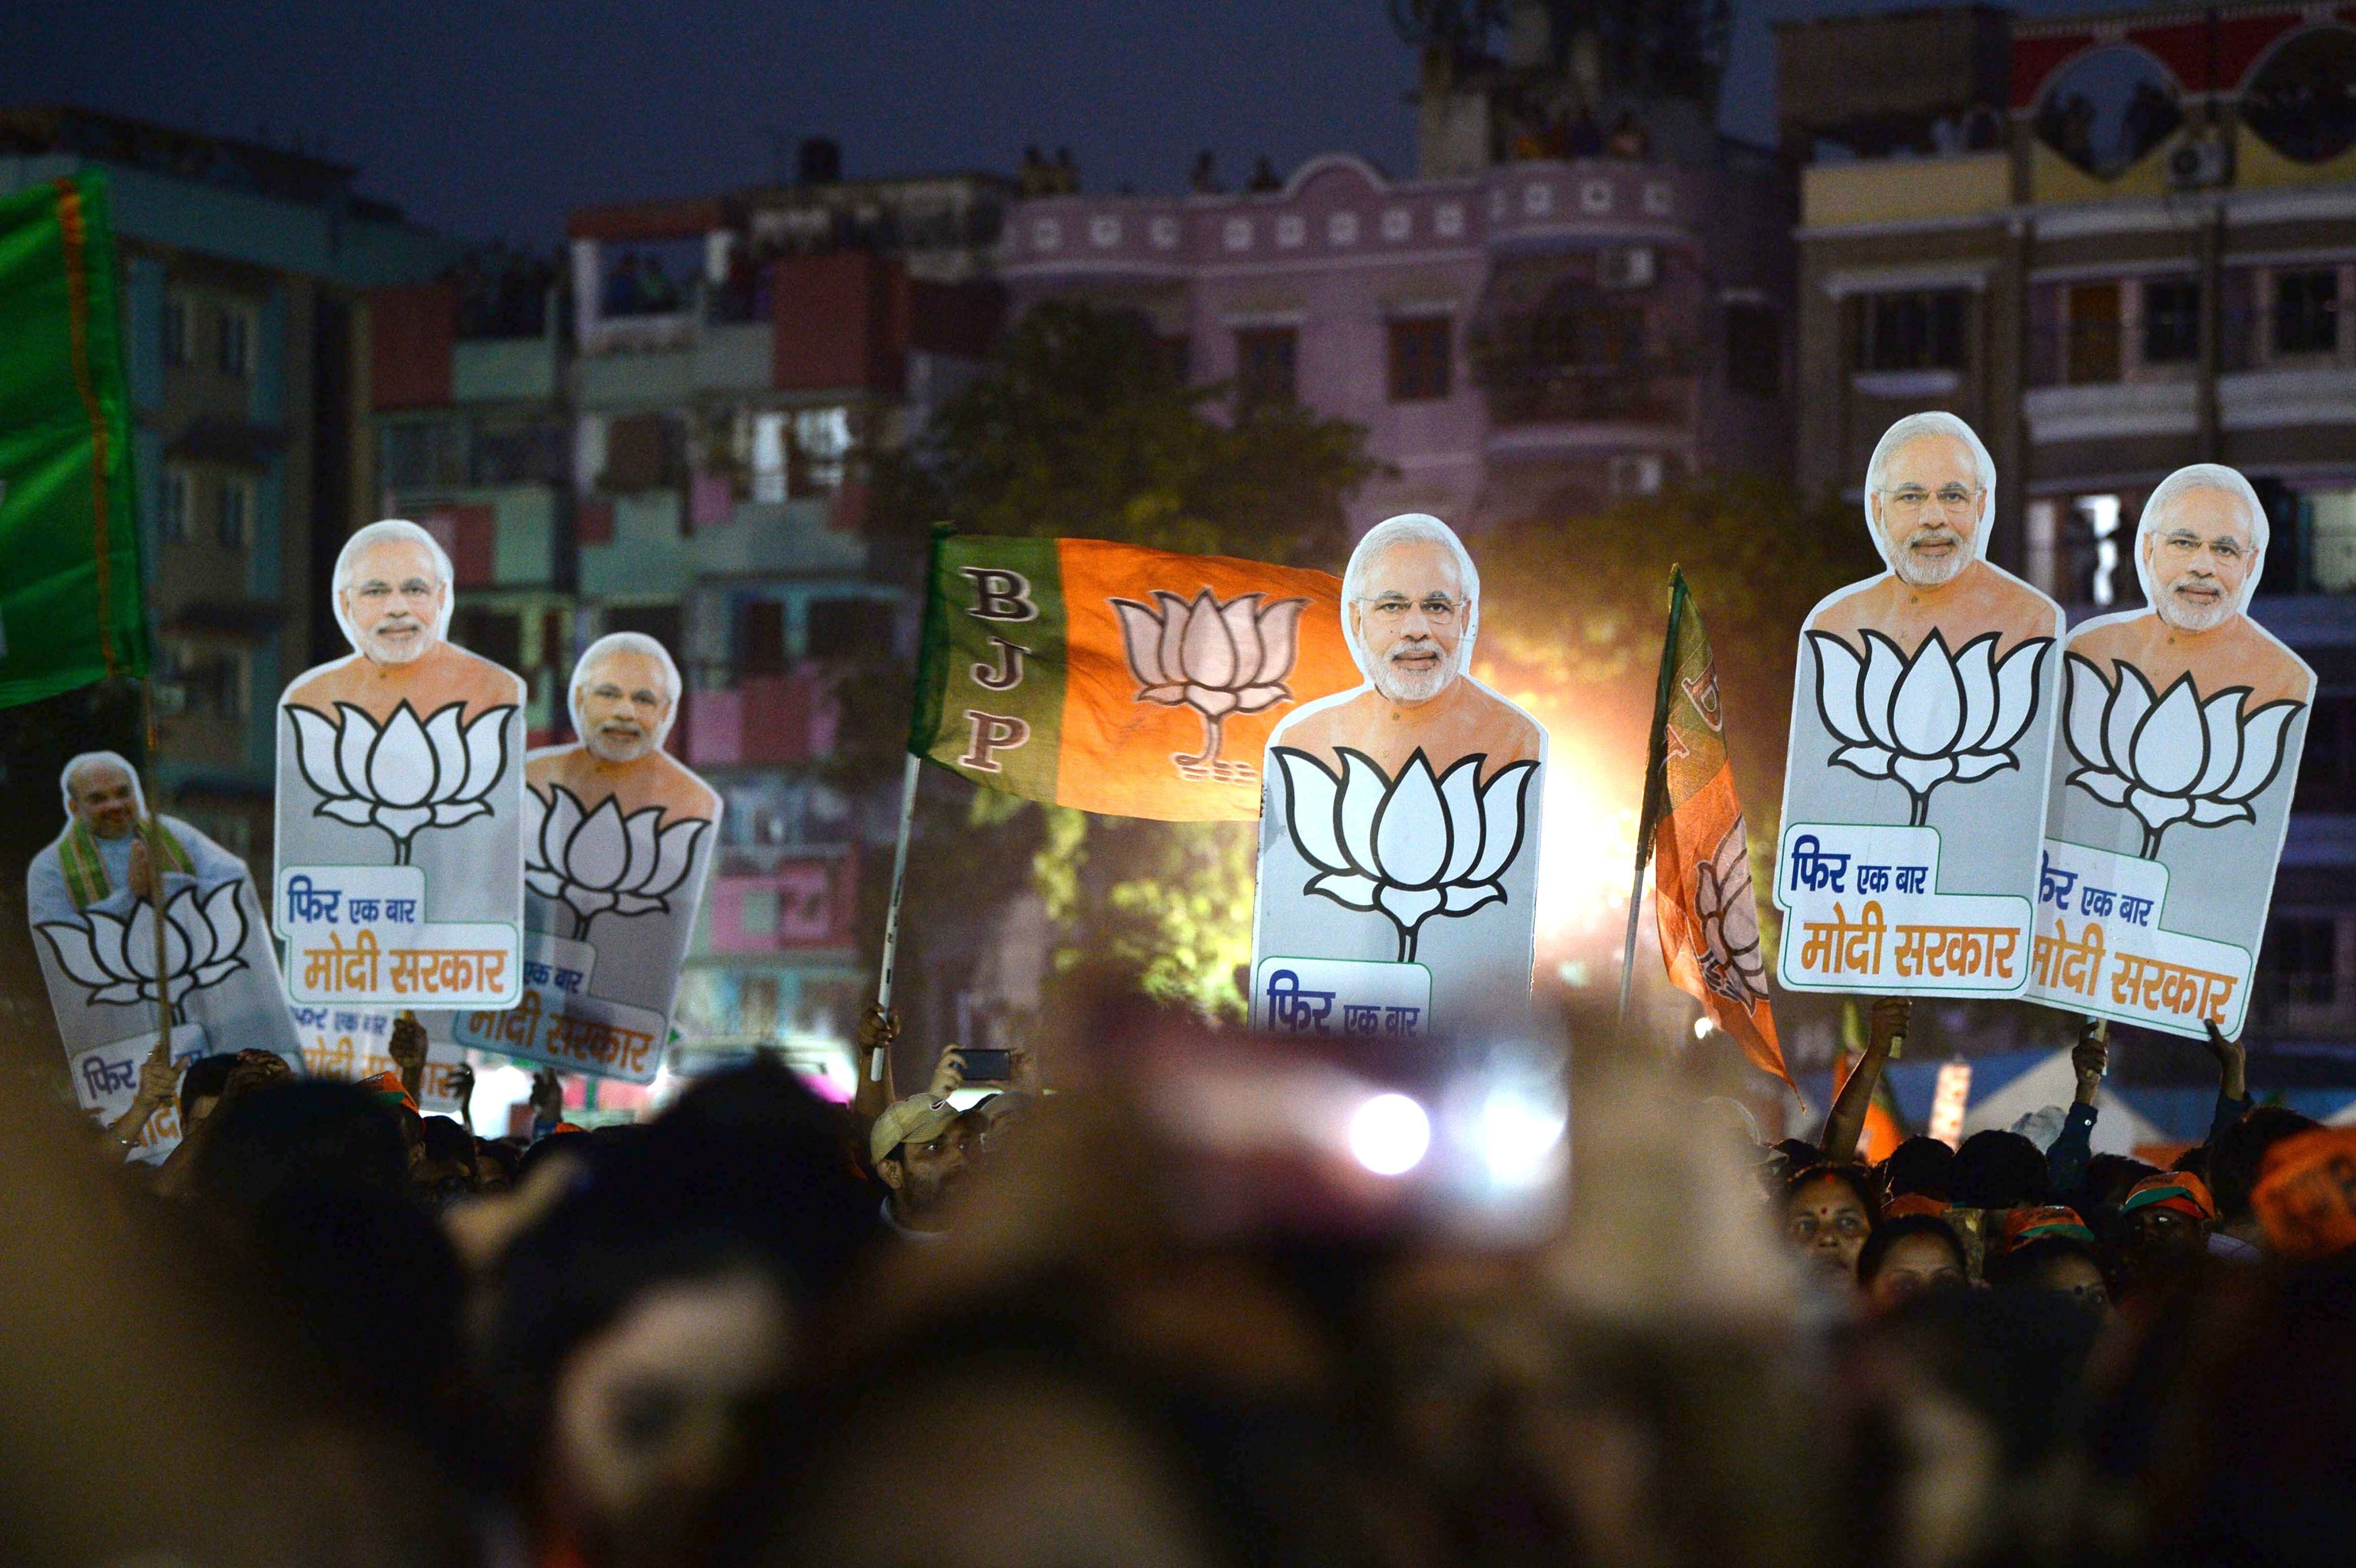 Exit Poll Results Predicting A BJP Sweep May Be